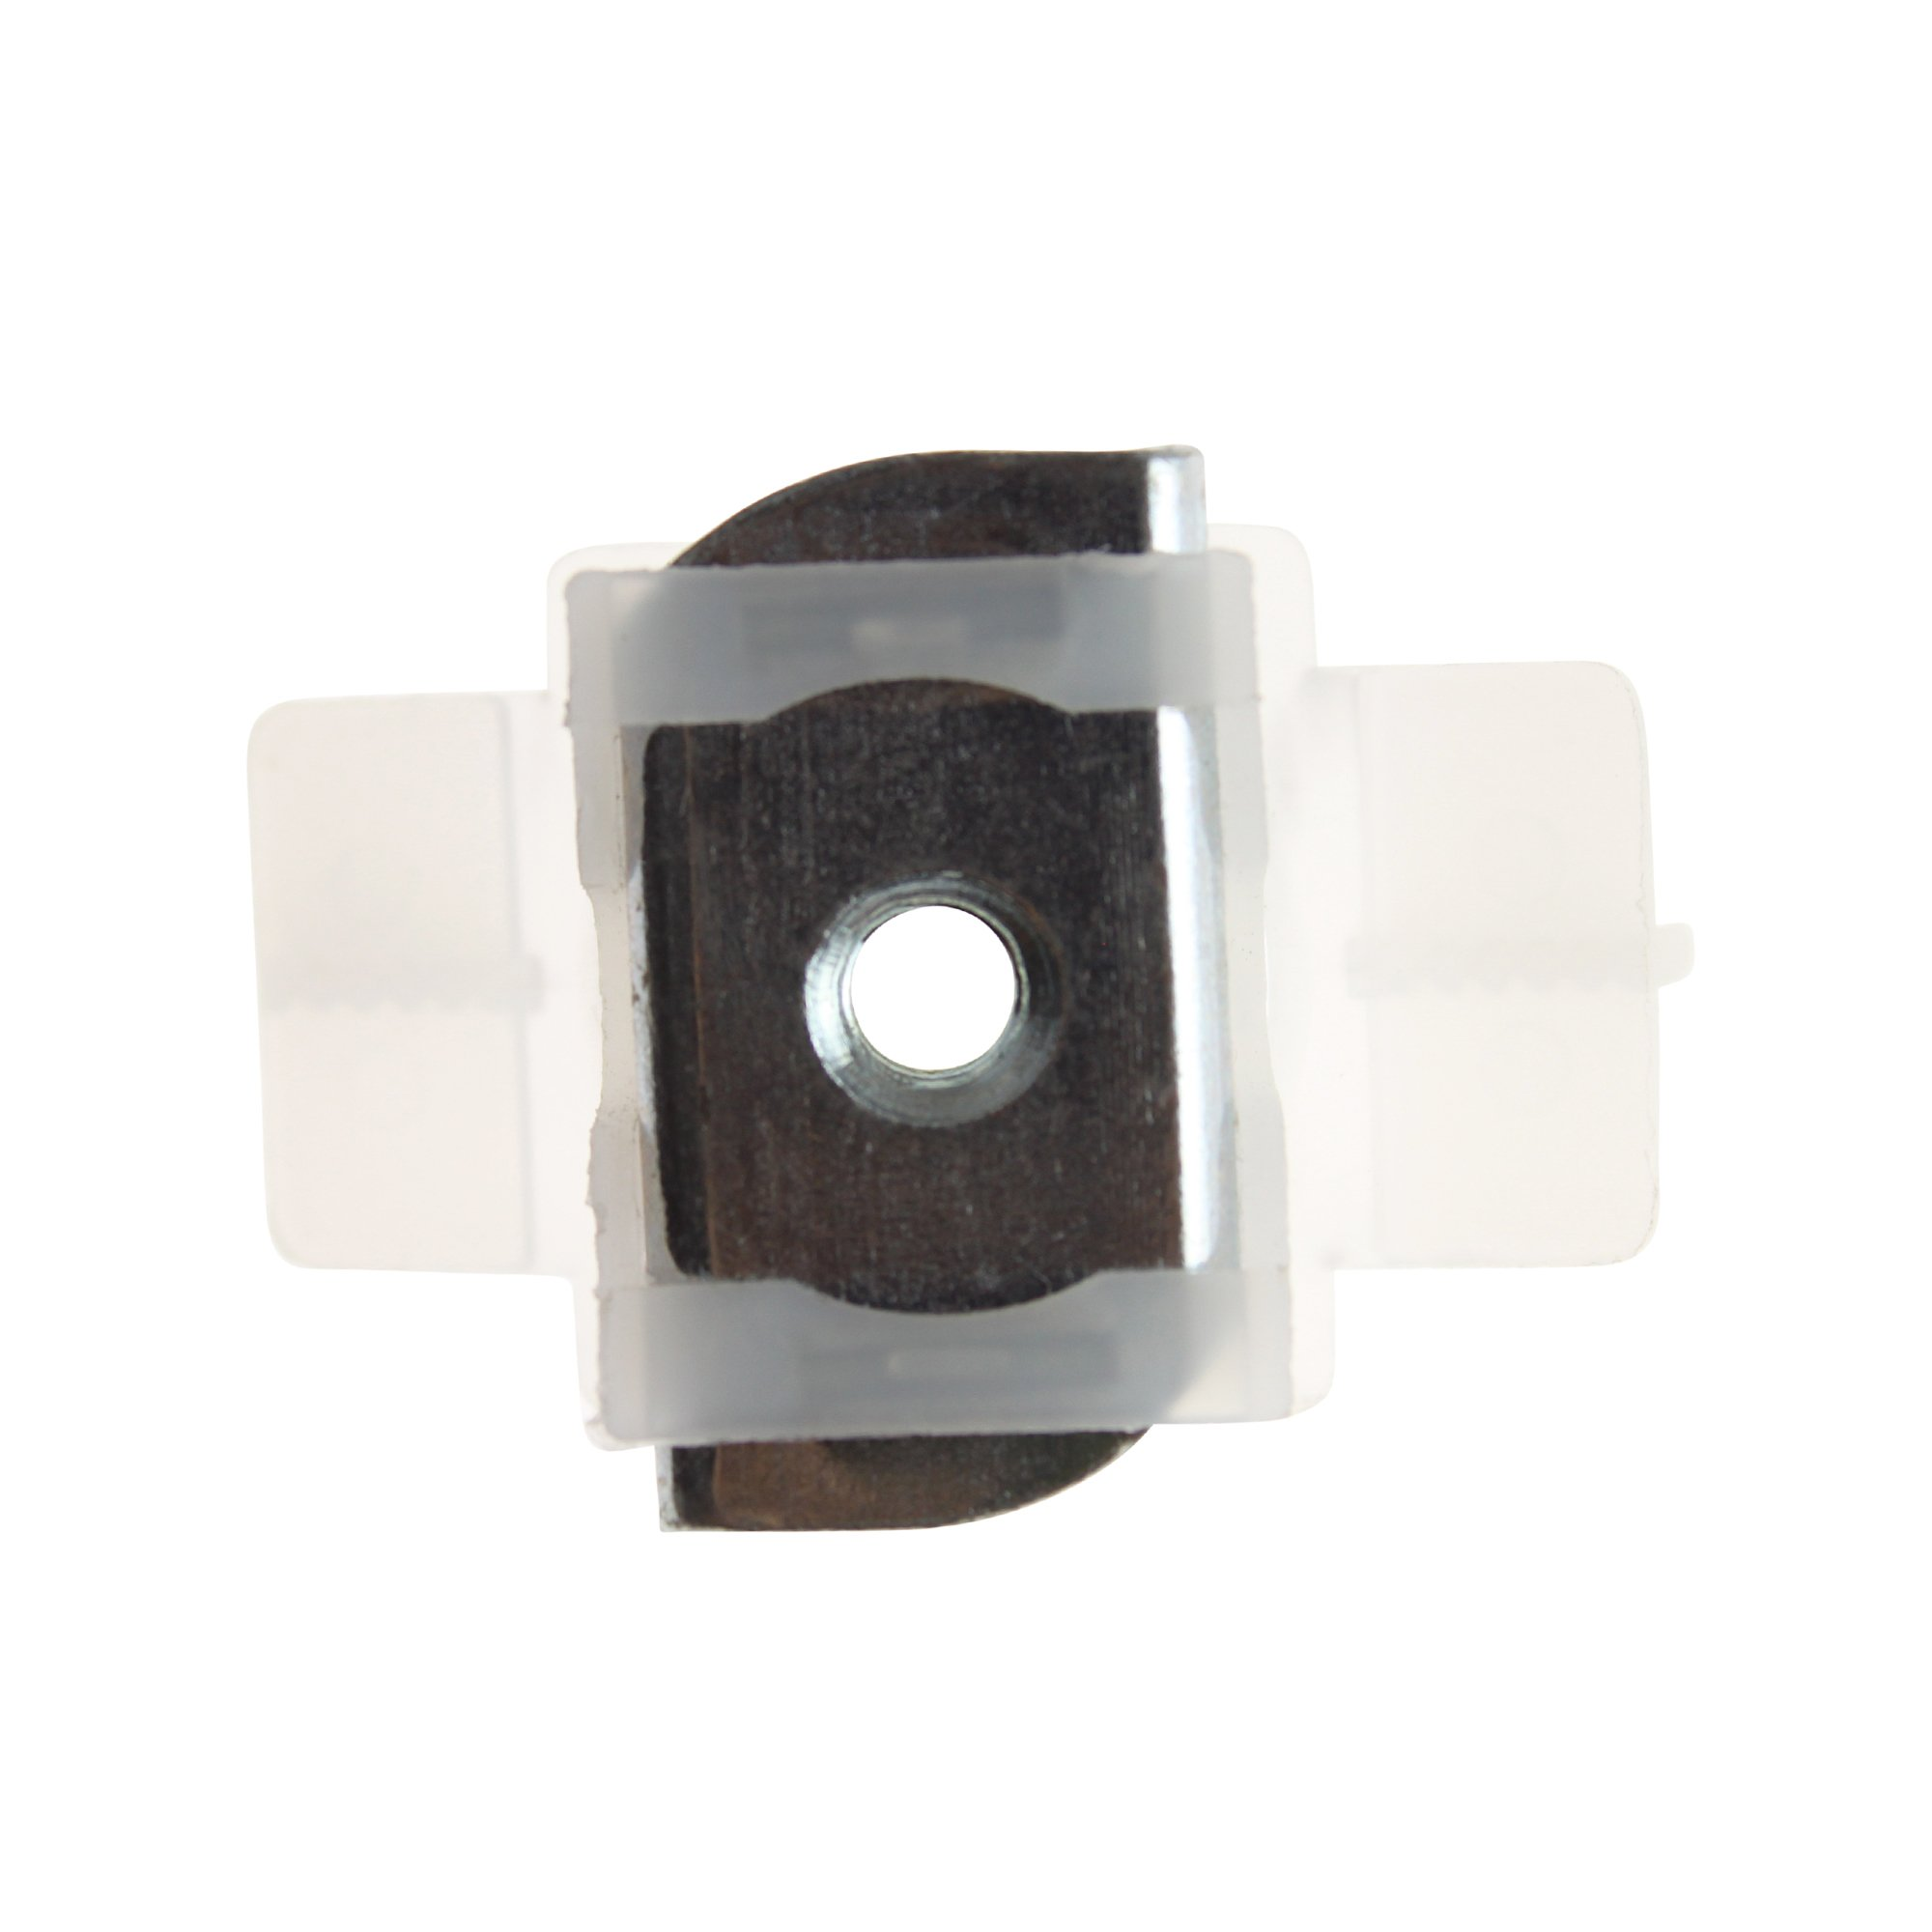 Generic SN-1 Strut Nut / Channel Nut With Plastic Sleeve (100 Pack)